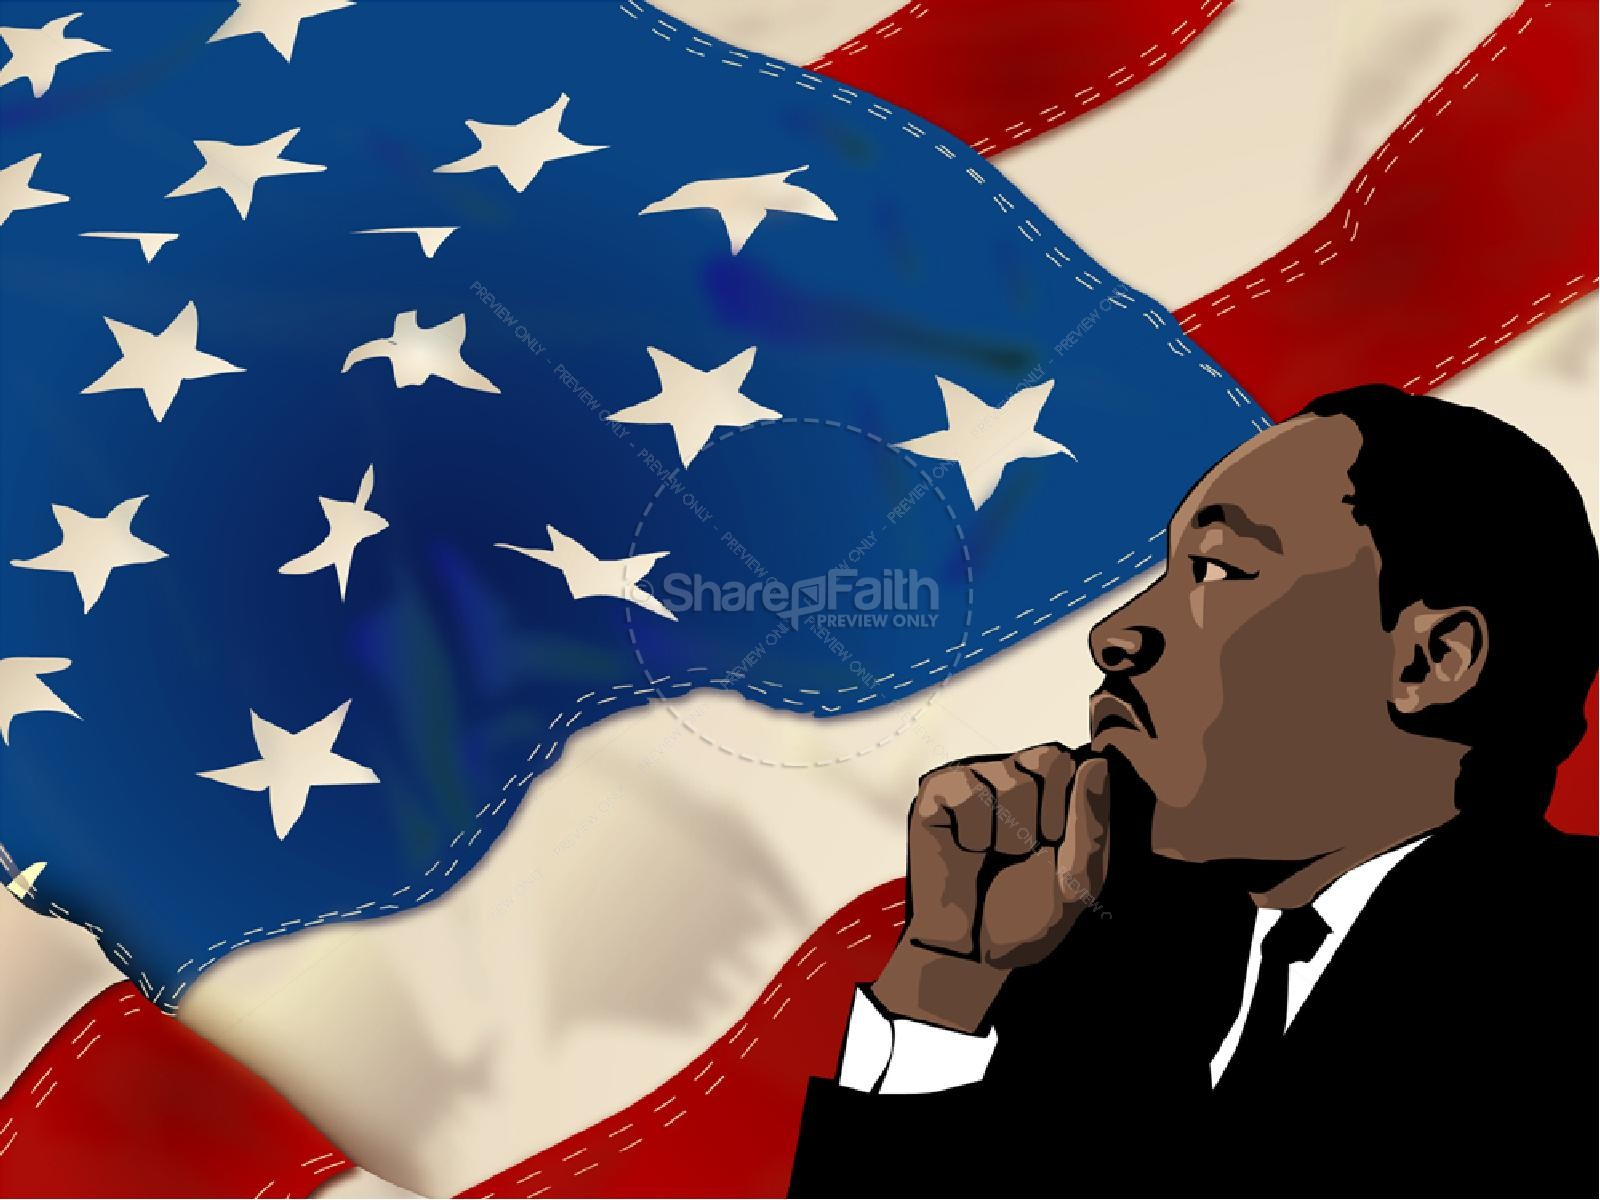 martin luther king and american flag